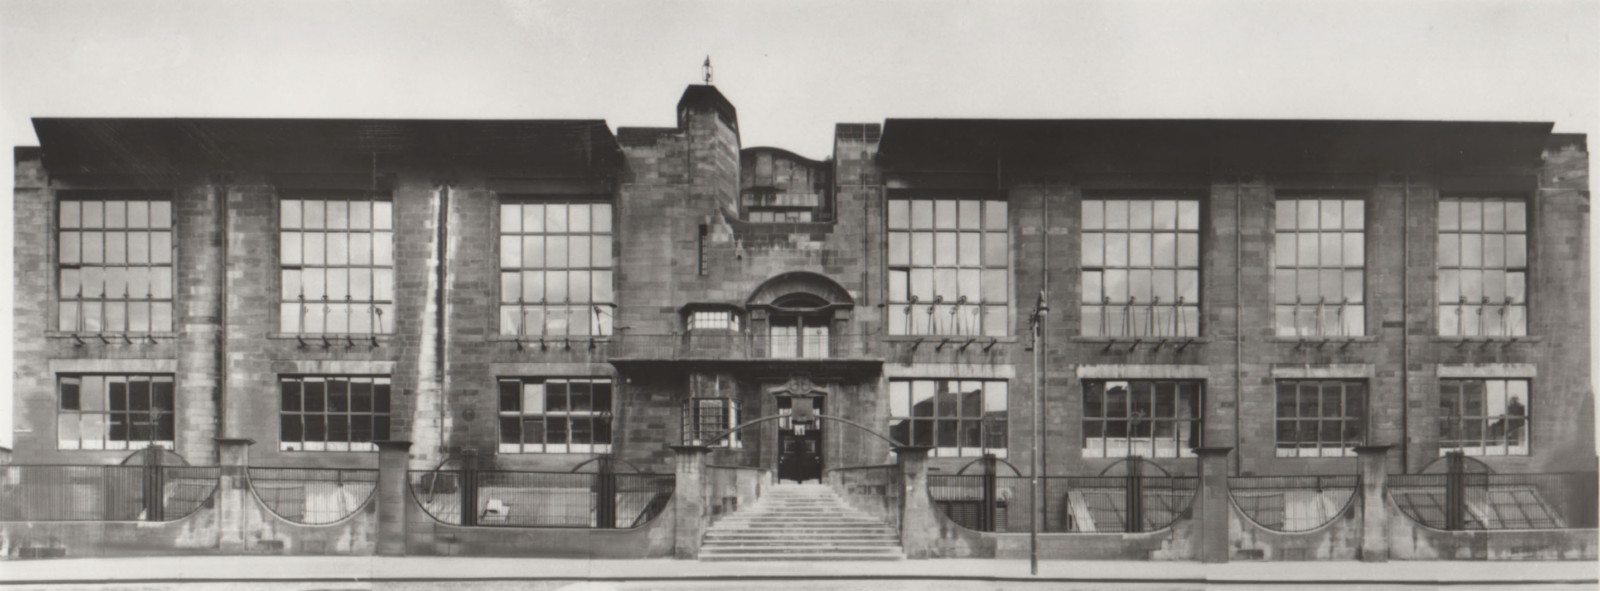 Glasgow School of Art Archives and Collections